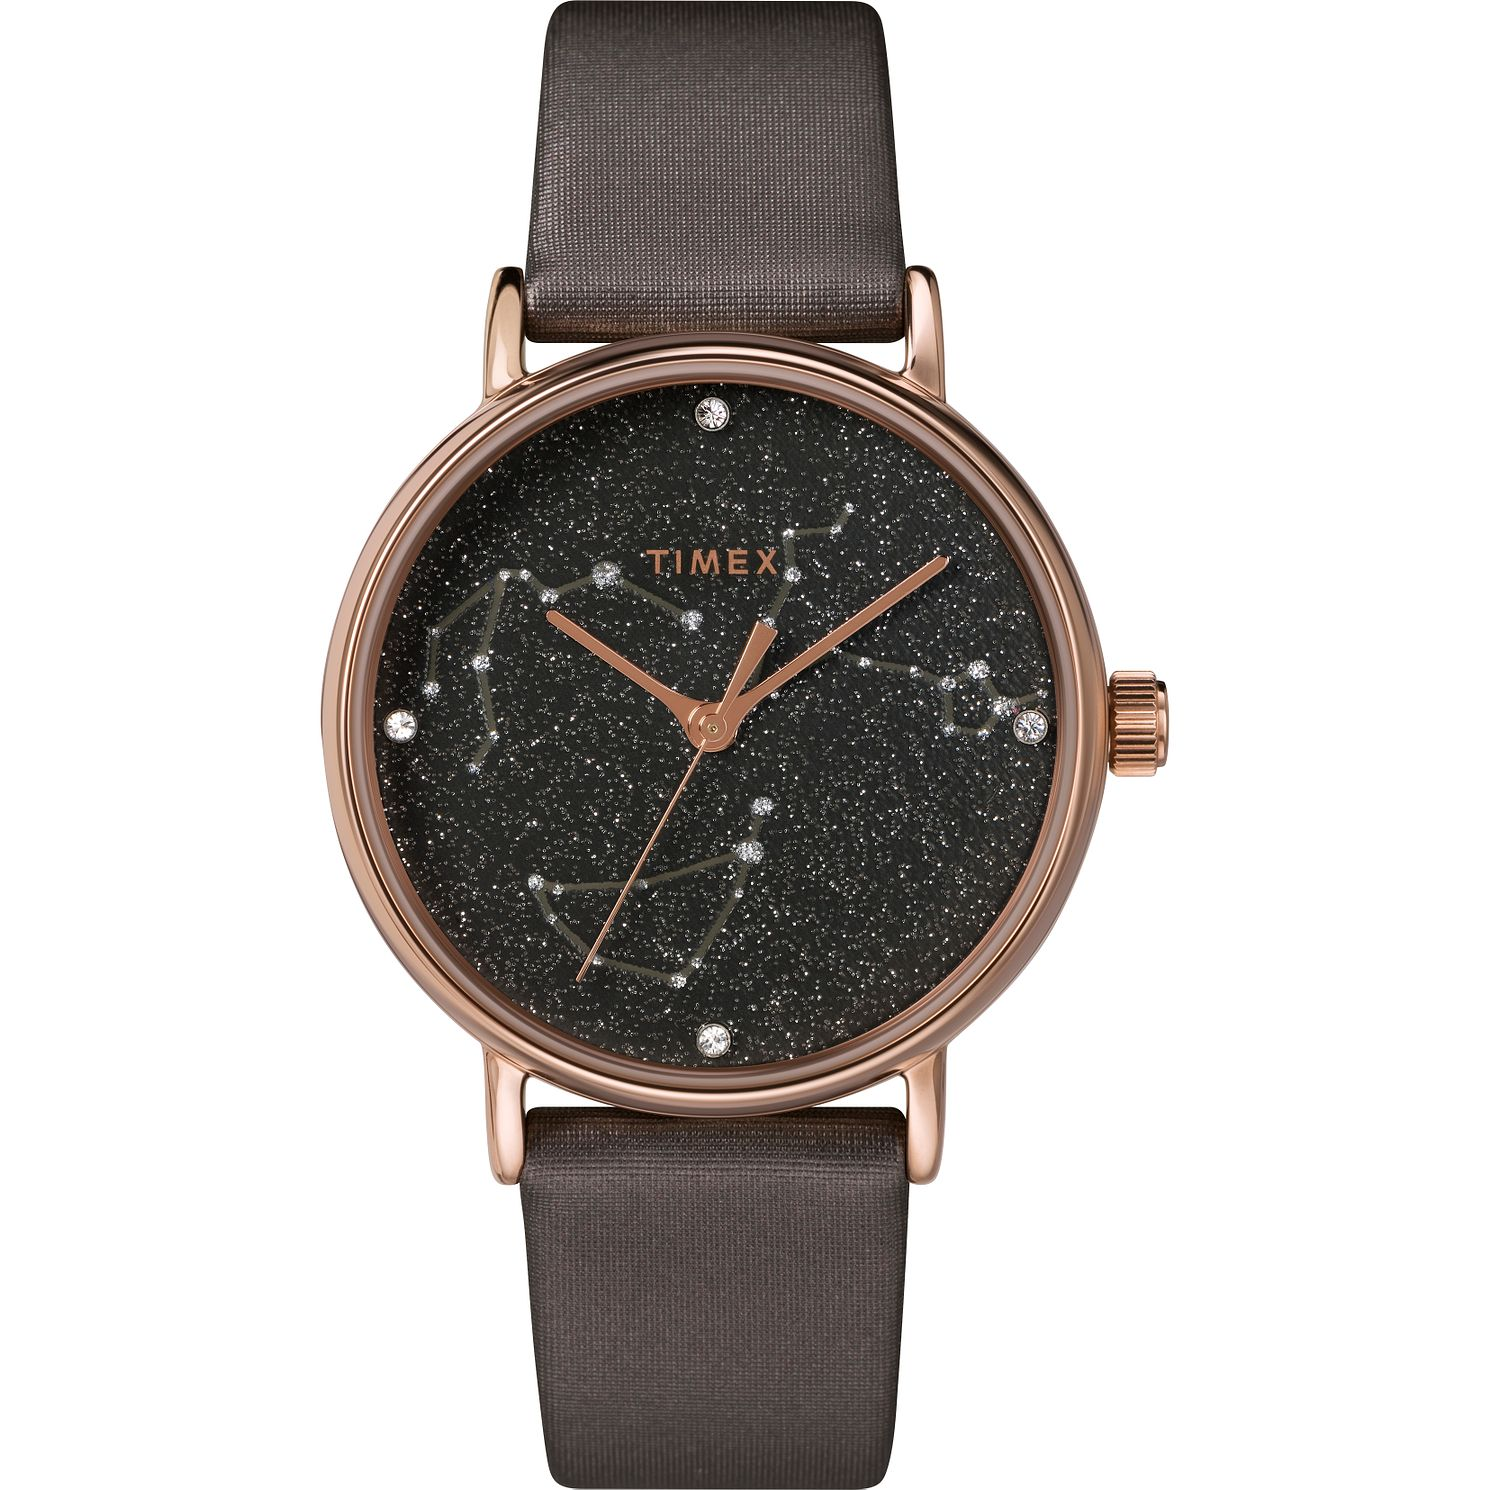 Timex Indiglo Ladies' Bronze Leather Strap Watch - Product number 4514424